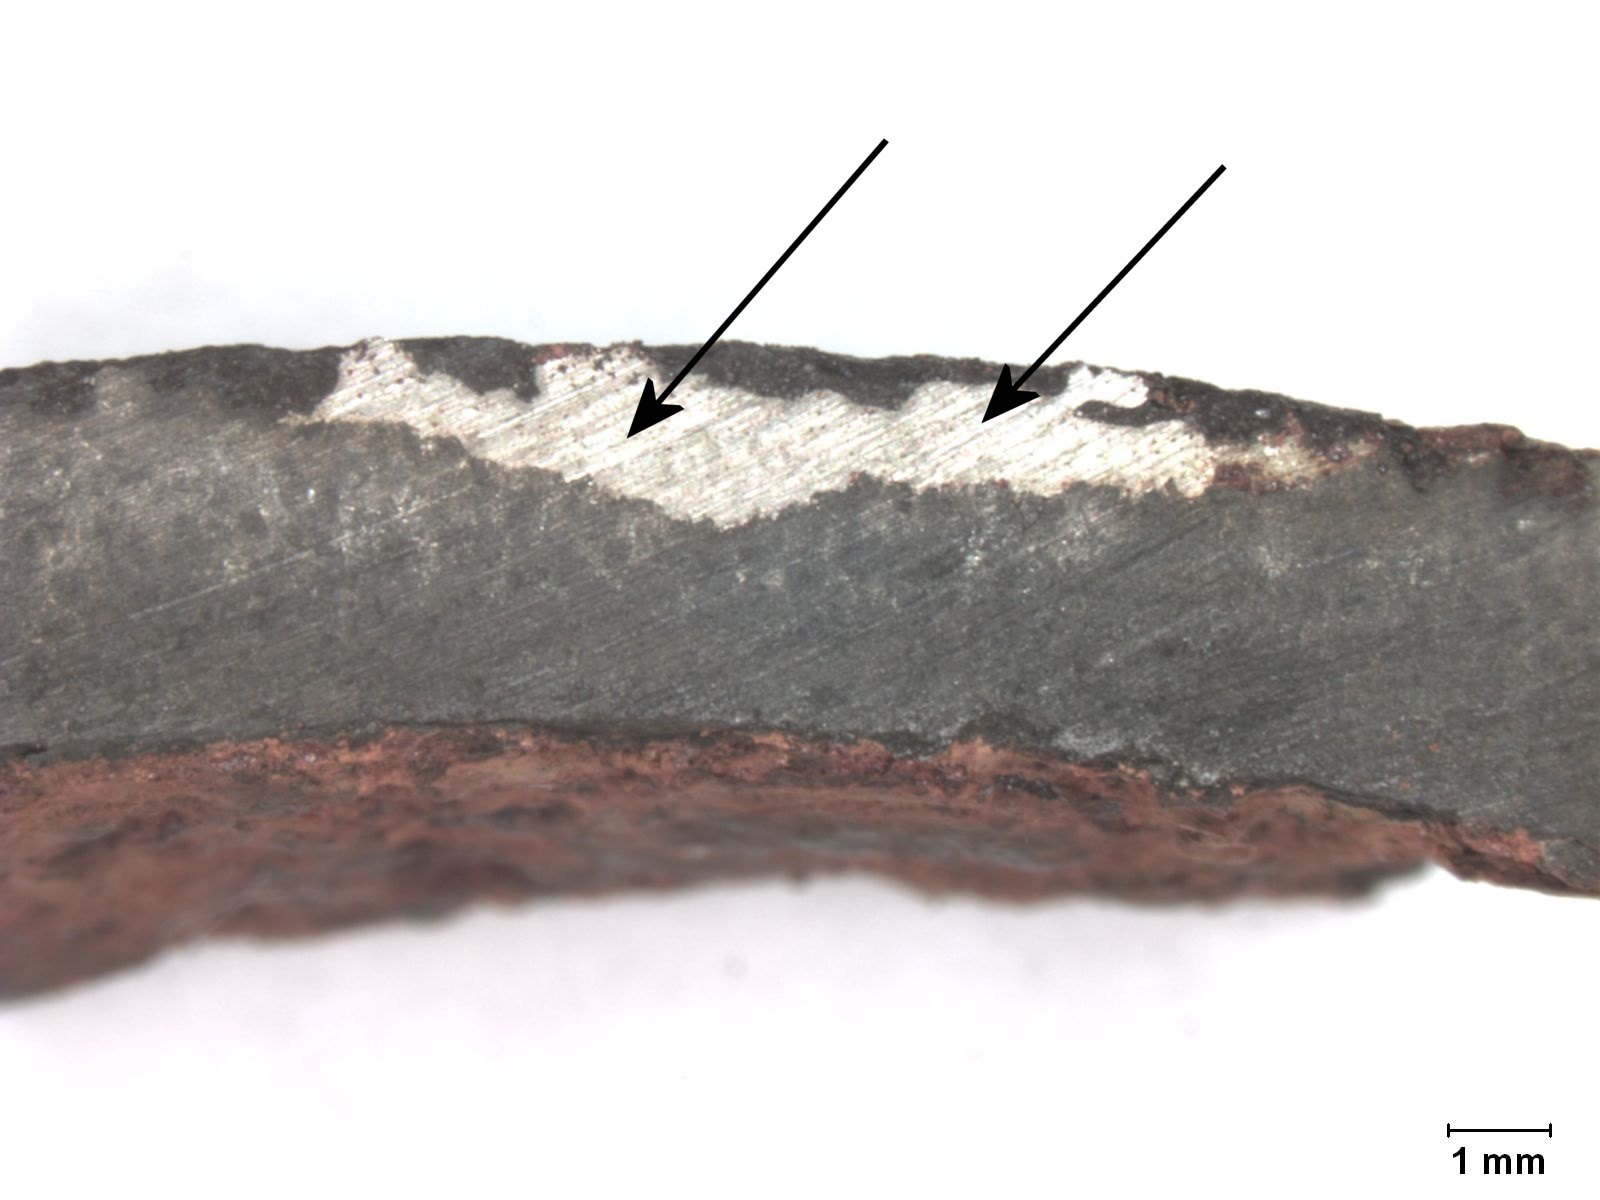 Cross section of vent pipe